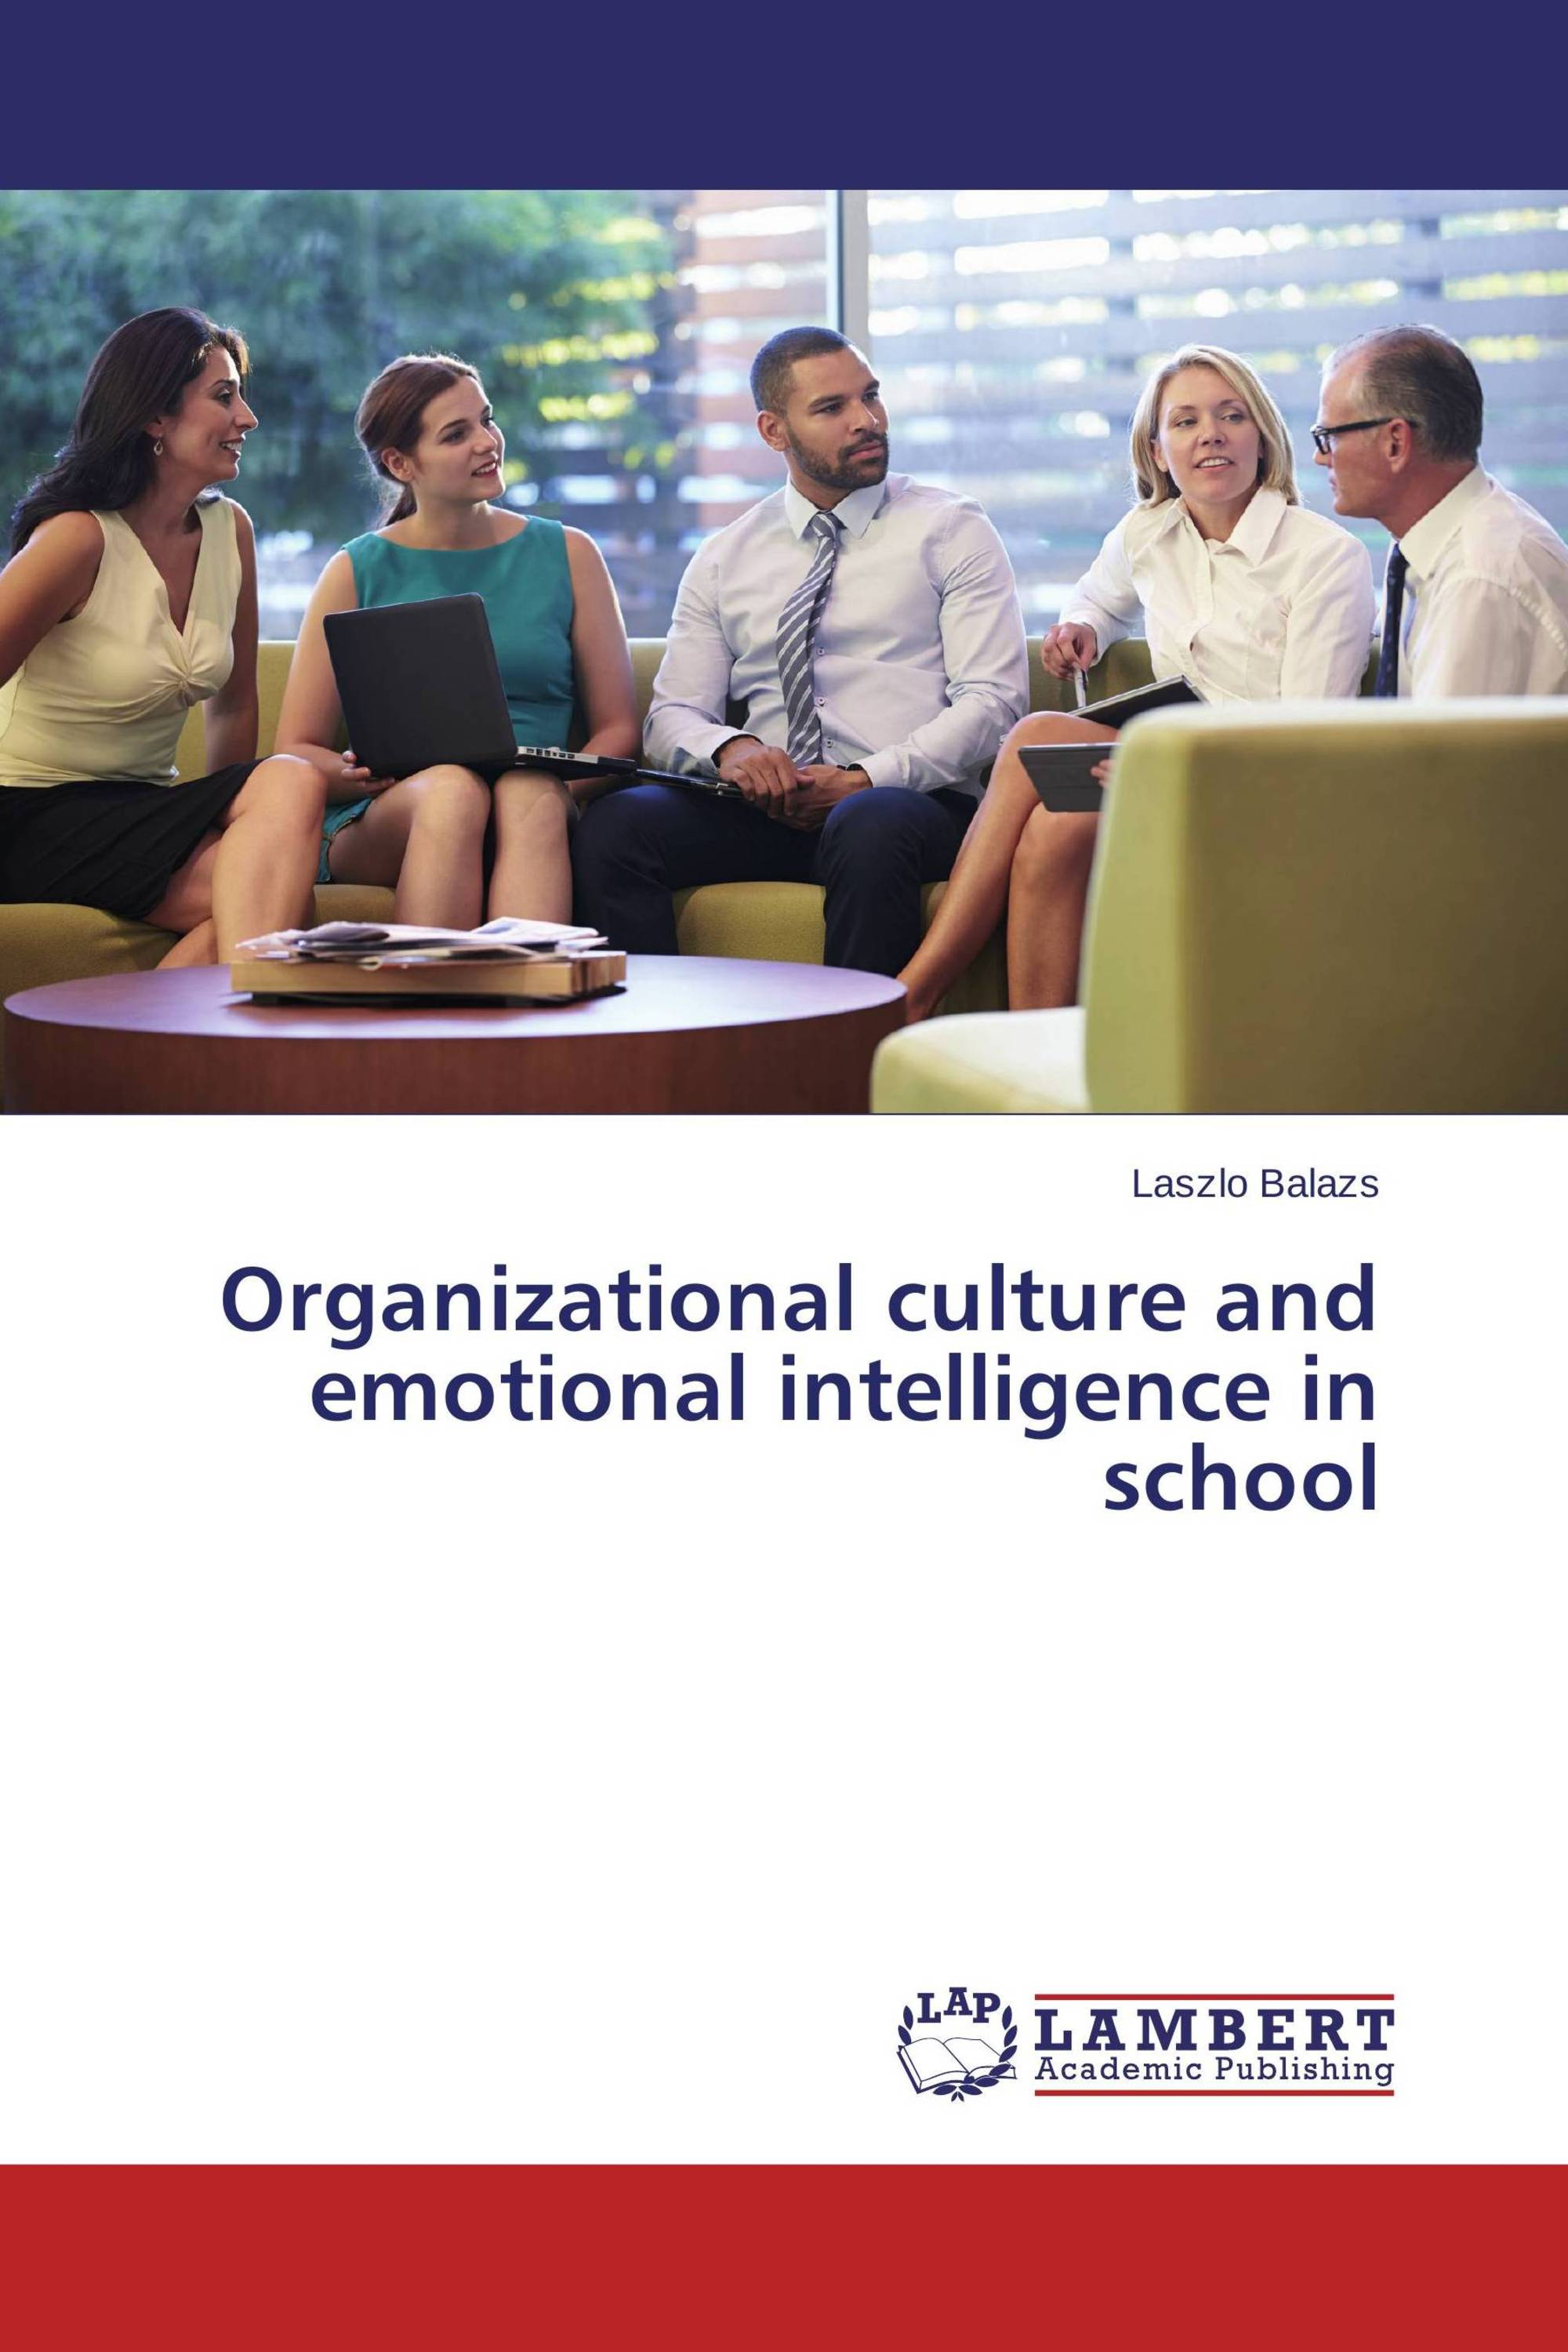 Organizational culture and emotional intelligence in school